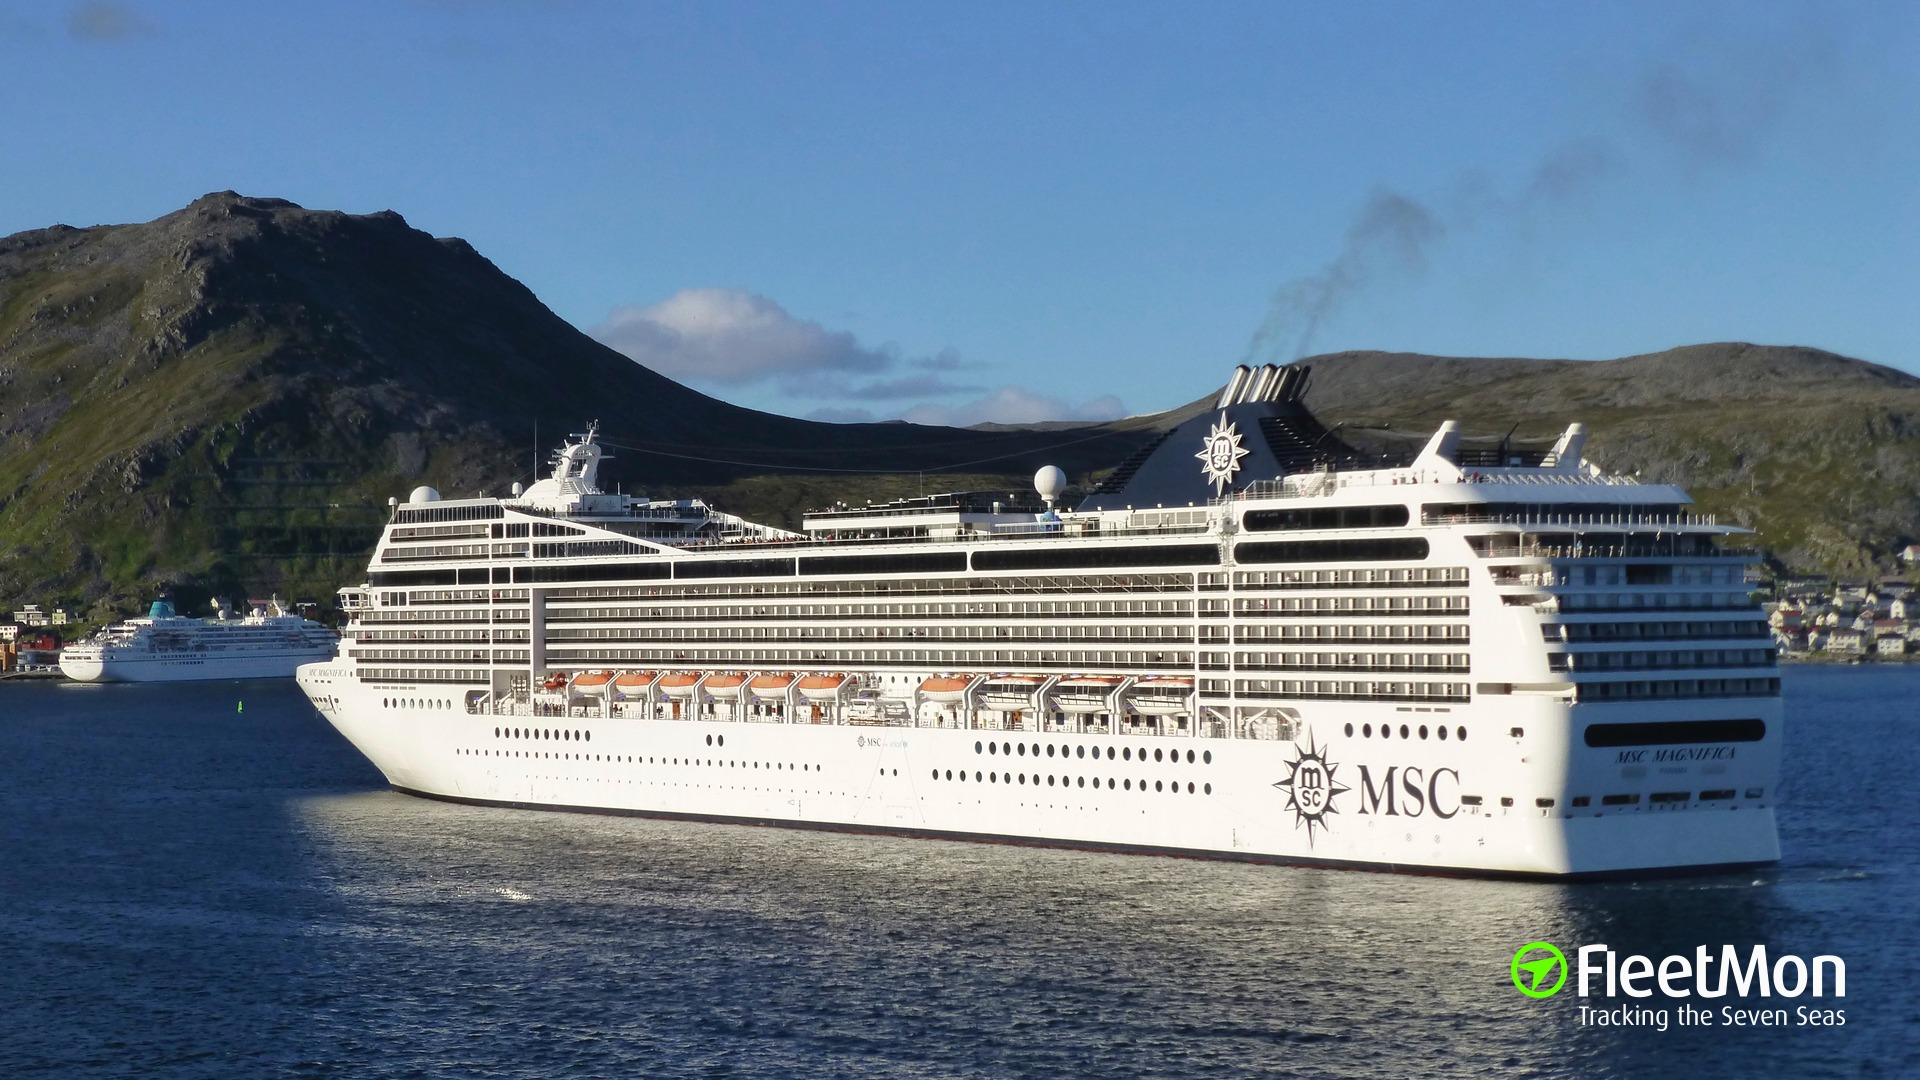 Cruise liner MSC MAGNIFICA allided with breakwater, Piraeus